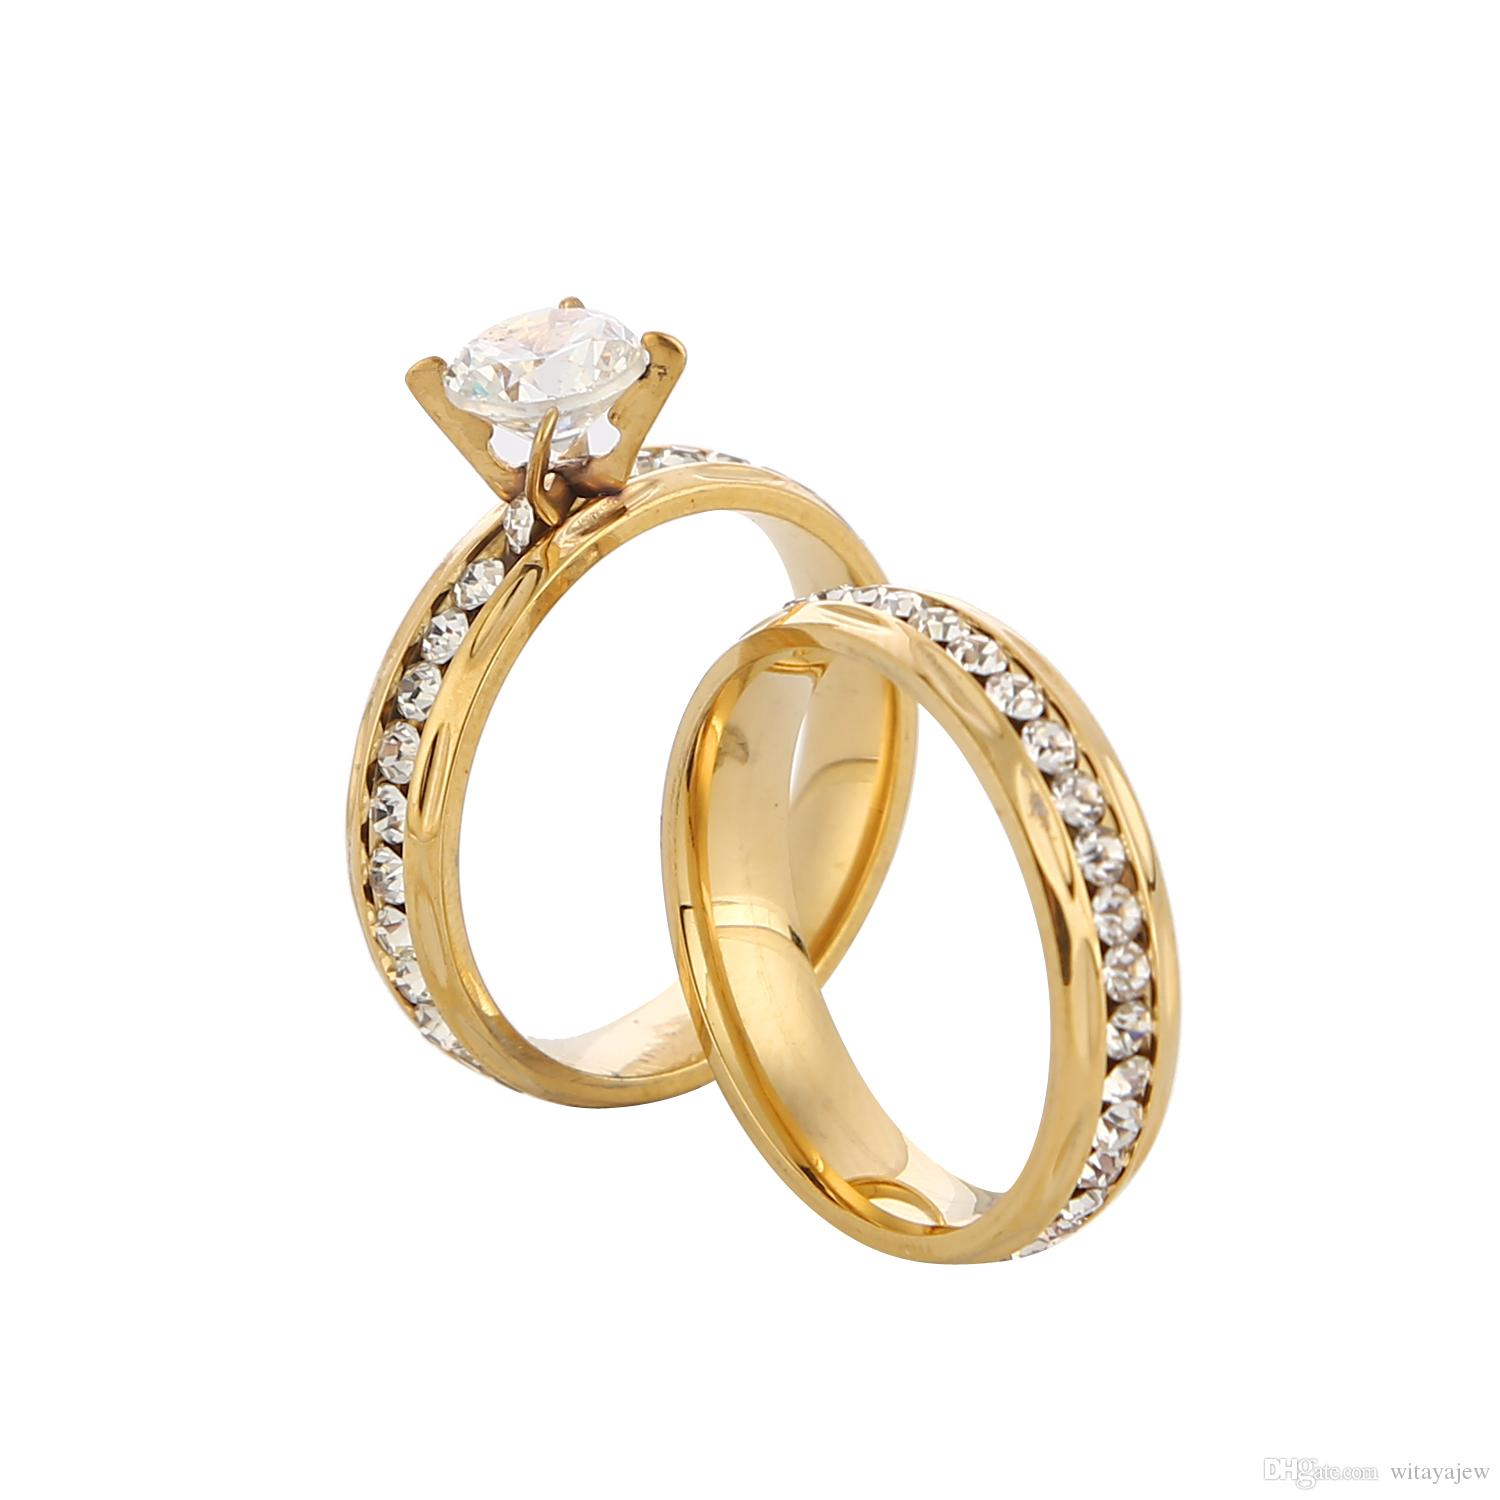 rings affordable on valentine day deals s heavy best cheap jewellery top weddings com engagement